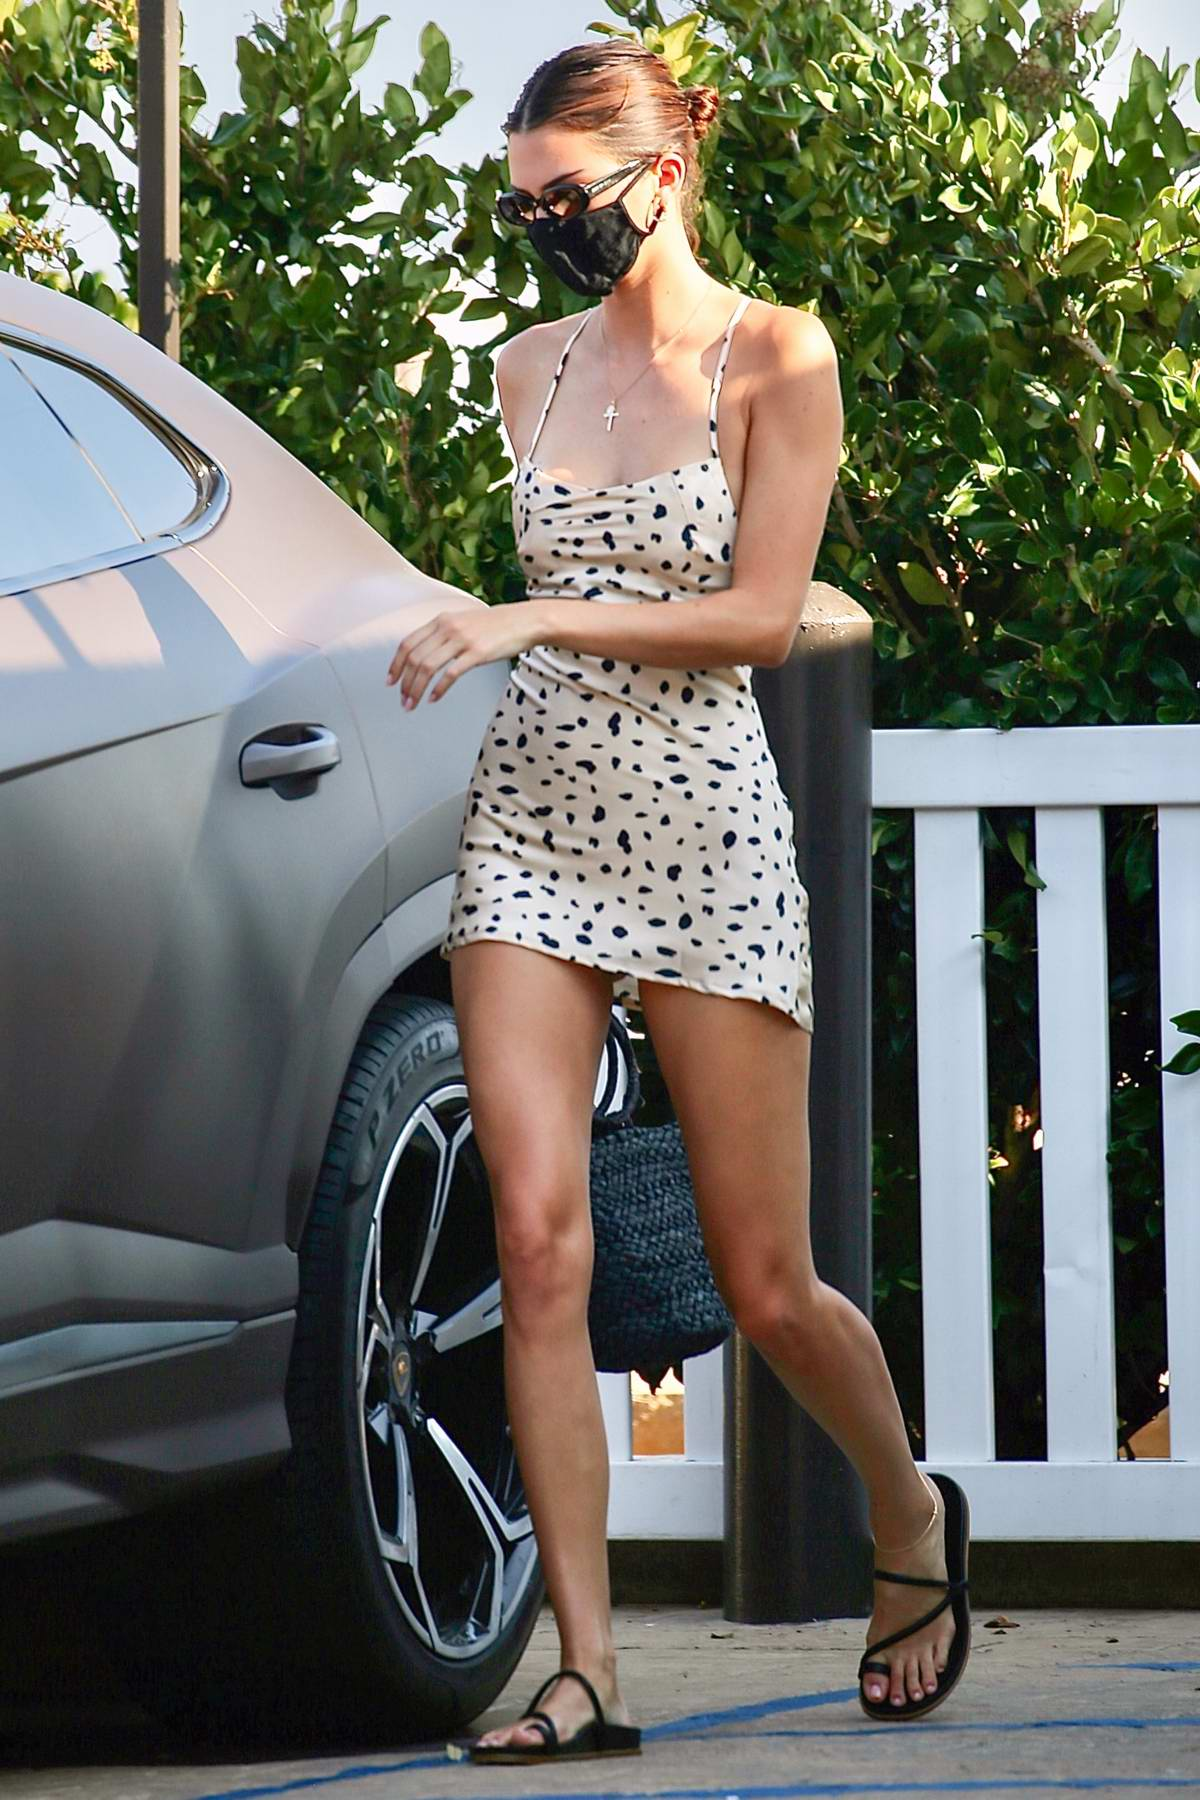 Kendall Jenner looks stunning in a mini dress as she leaves Nobu with Kylie Jenner and Devin Booker in Malibu, California